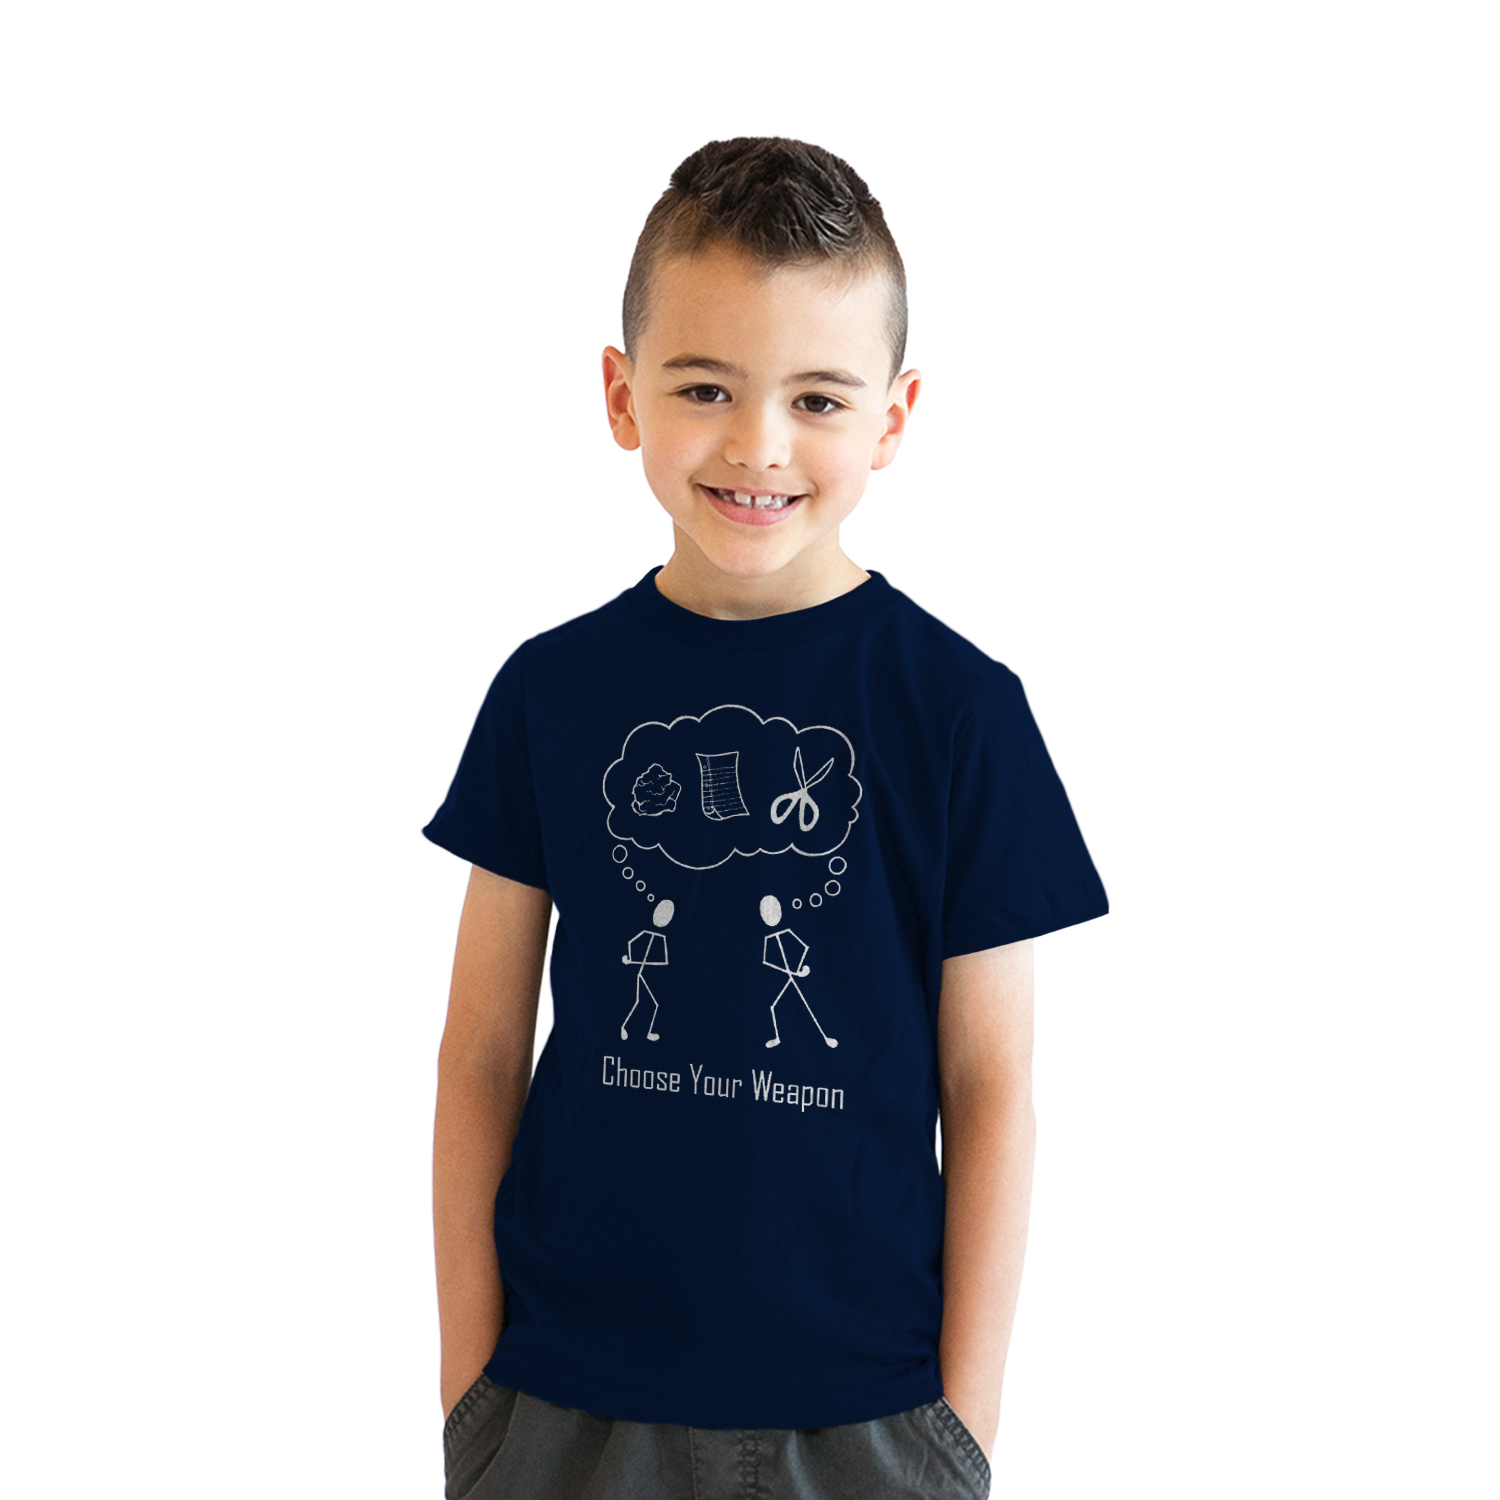 0a2dae74 Youth Choose Your Weapon T-Shirt Rock Paper Scissors Shirt for Kids (blue) S